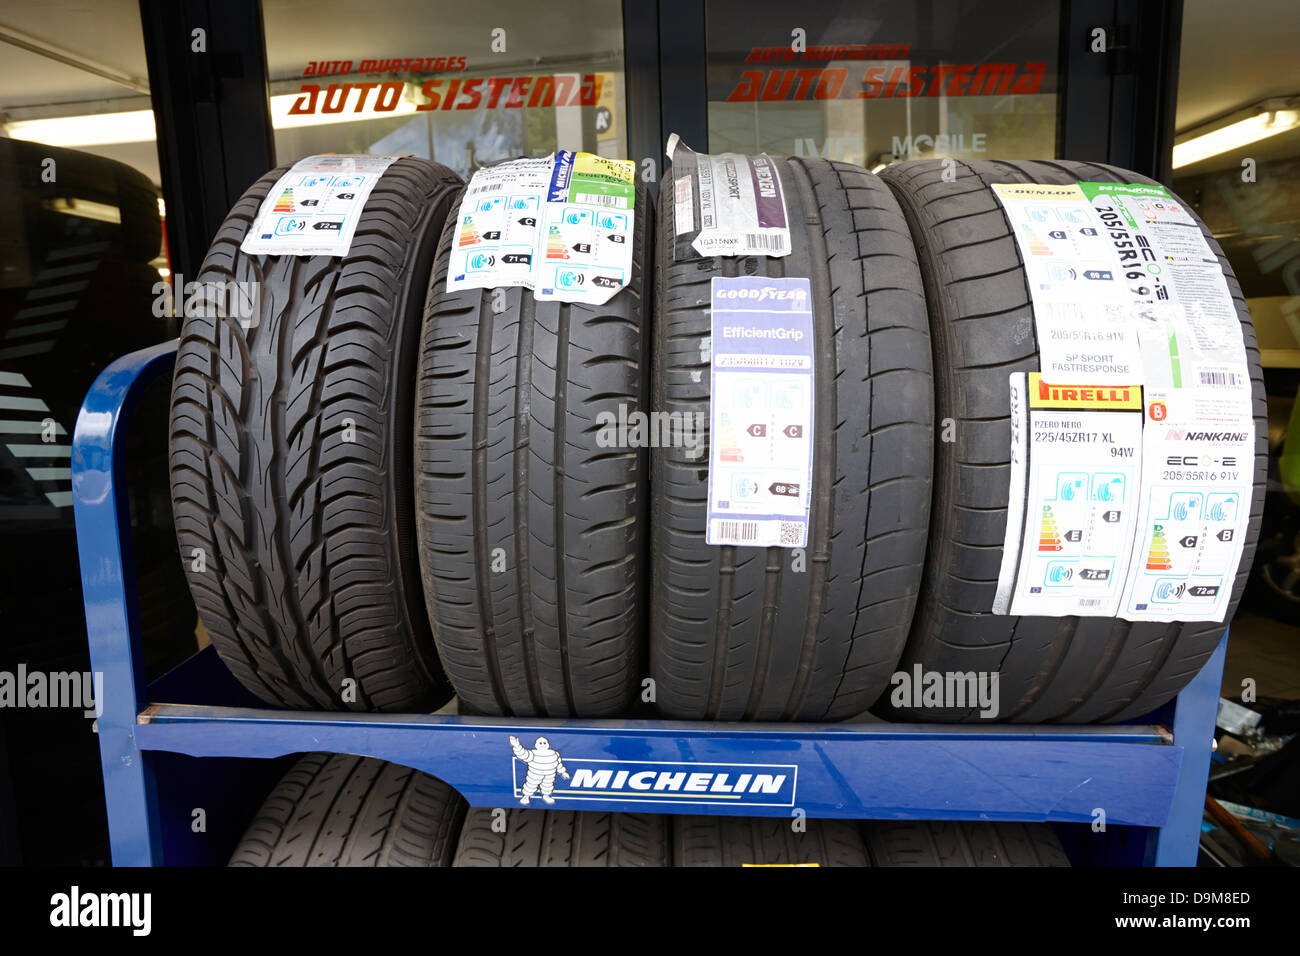 new tyres for sale on a rack in a garage with different information stickers andorra la vella andorra - Stock Image